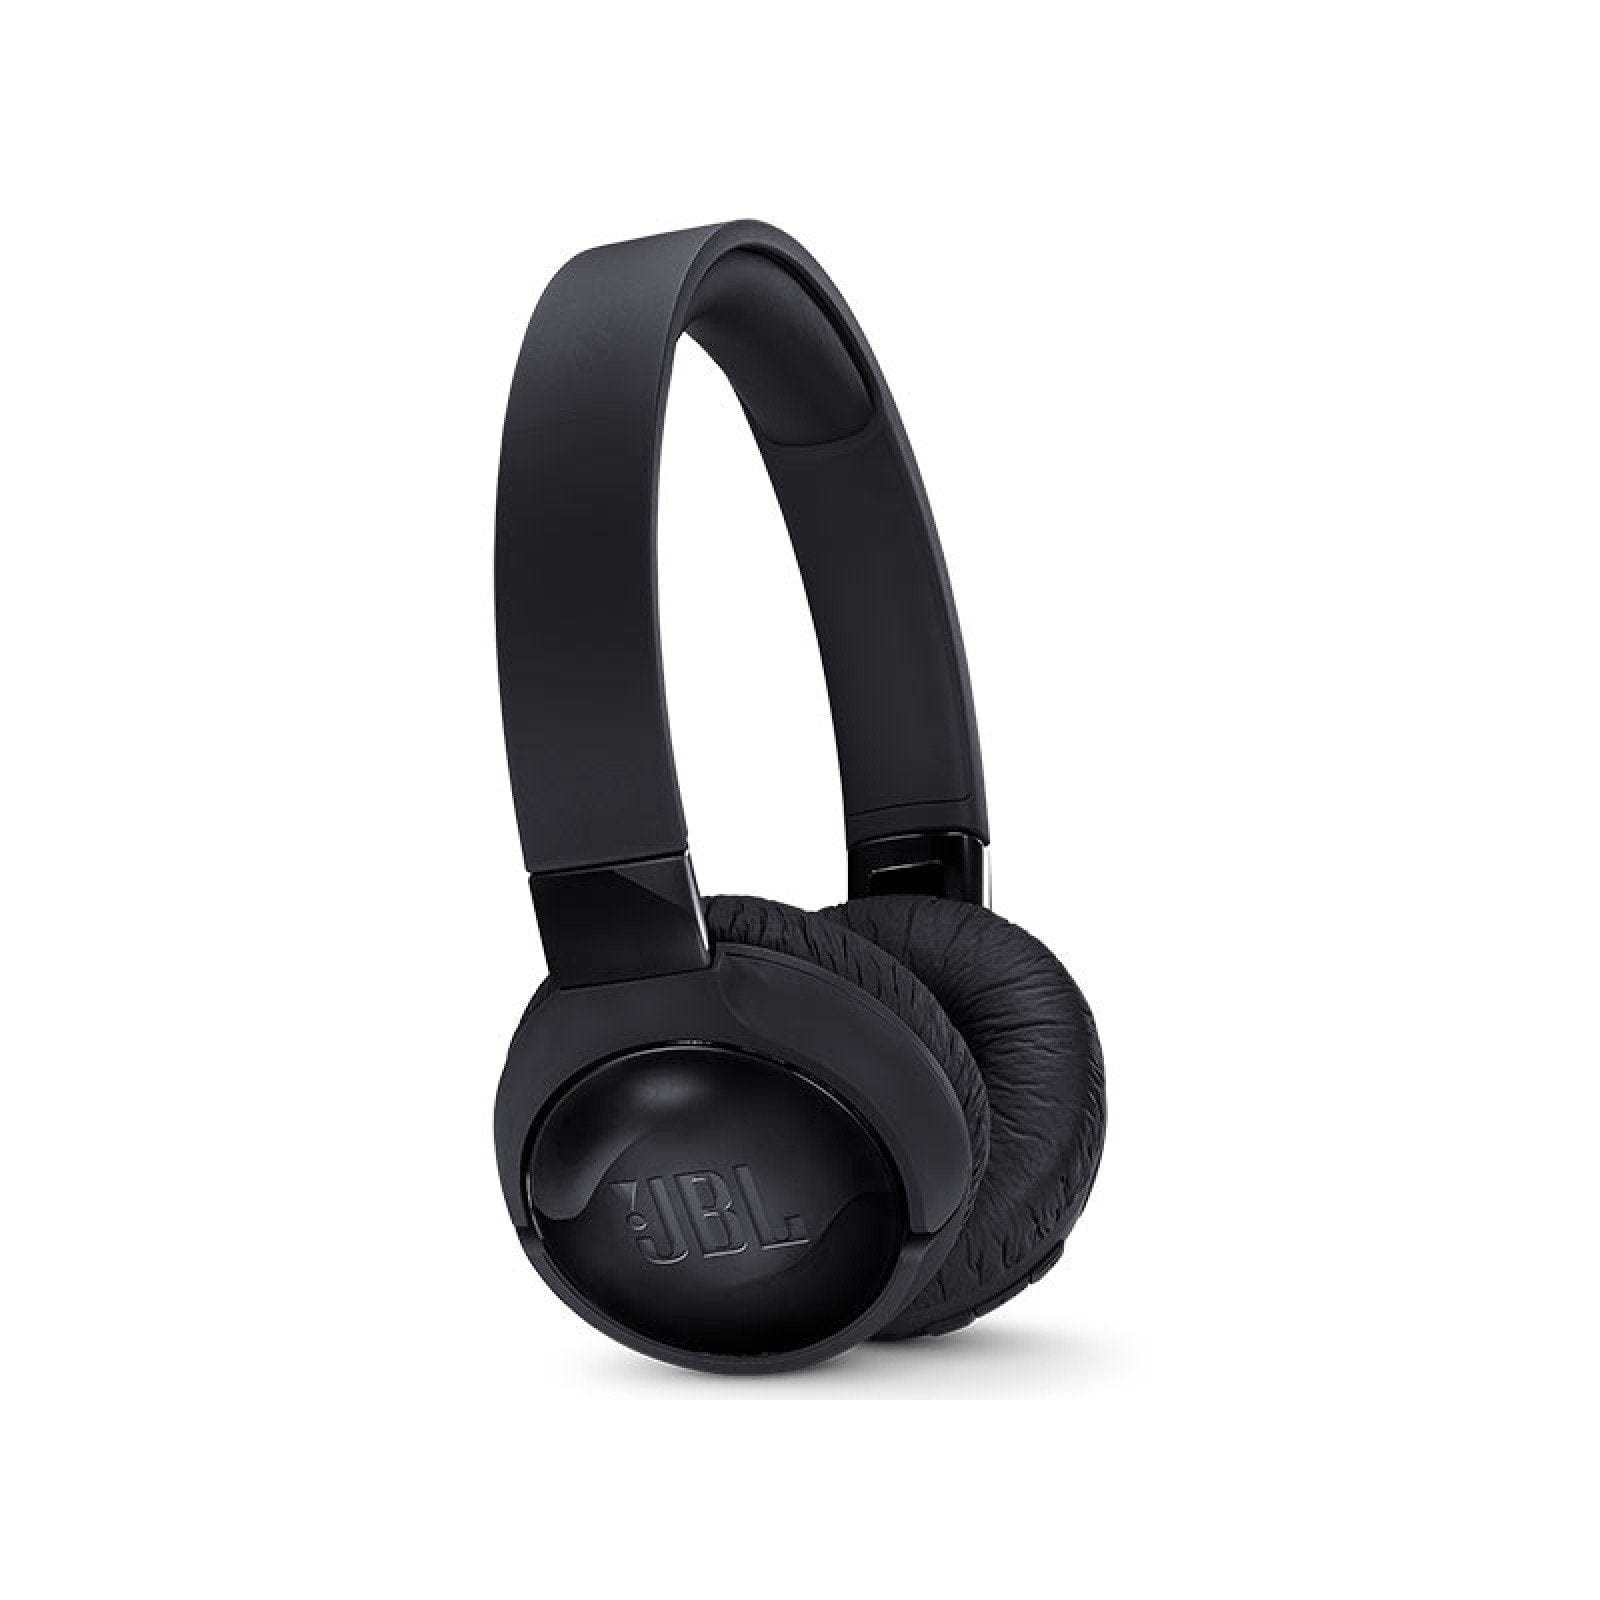 JBL Tune 600BTNC Wireless Noise Cancelling Headphones - Black iStore